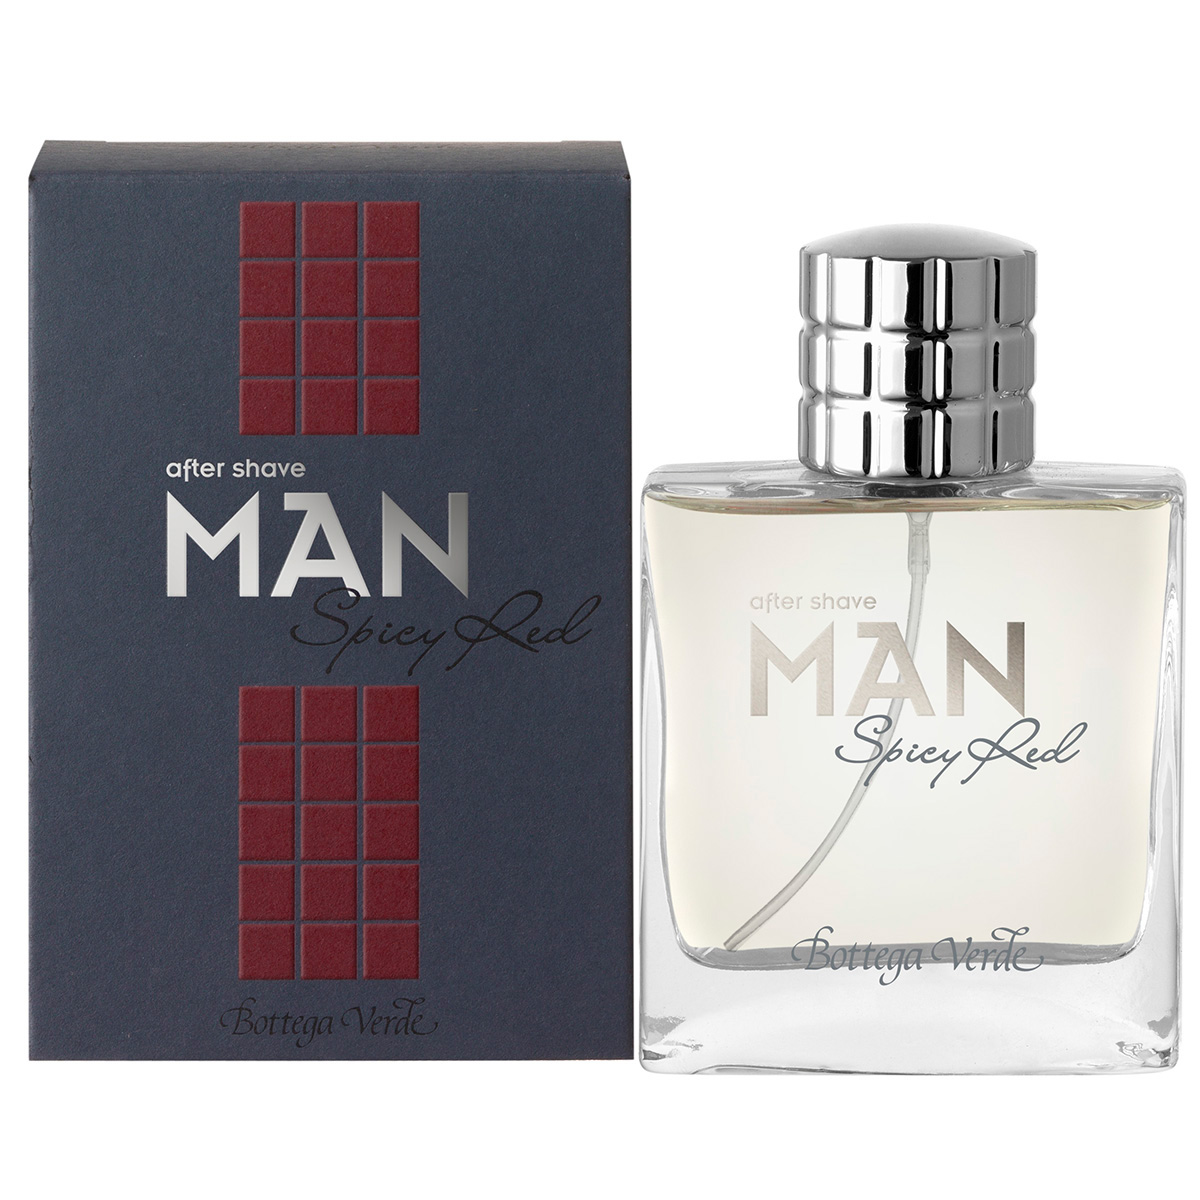 After shave Spicy red - Man, 50 ML